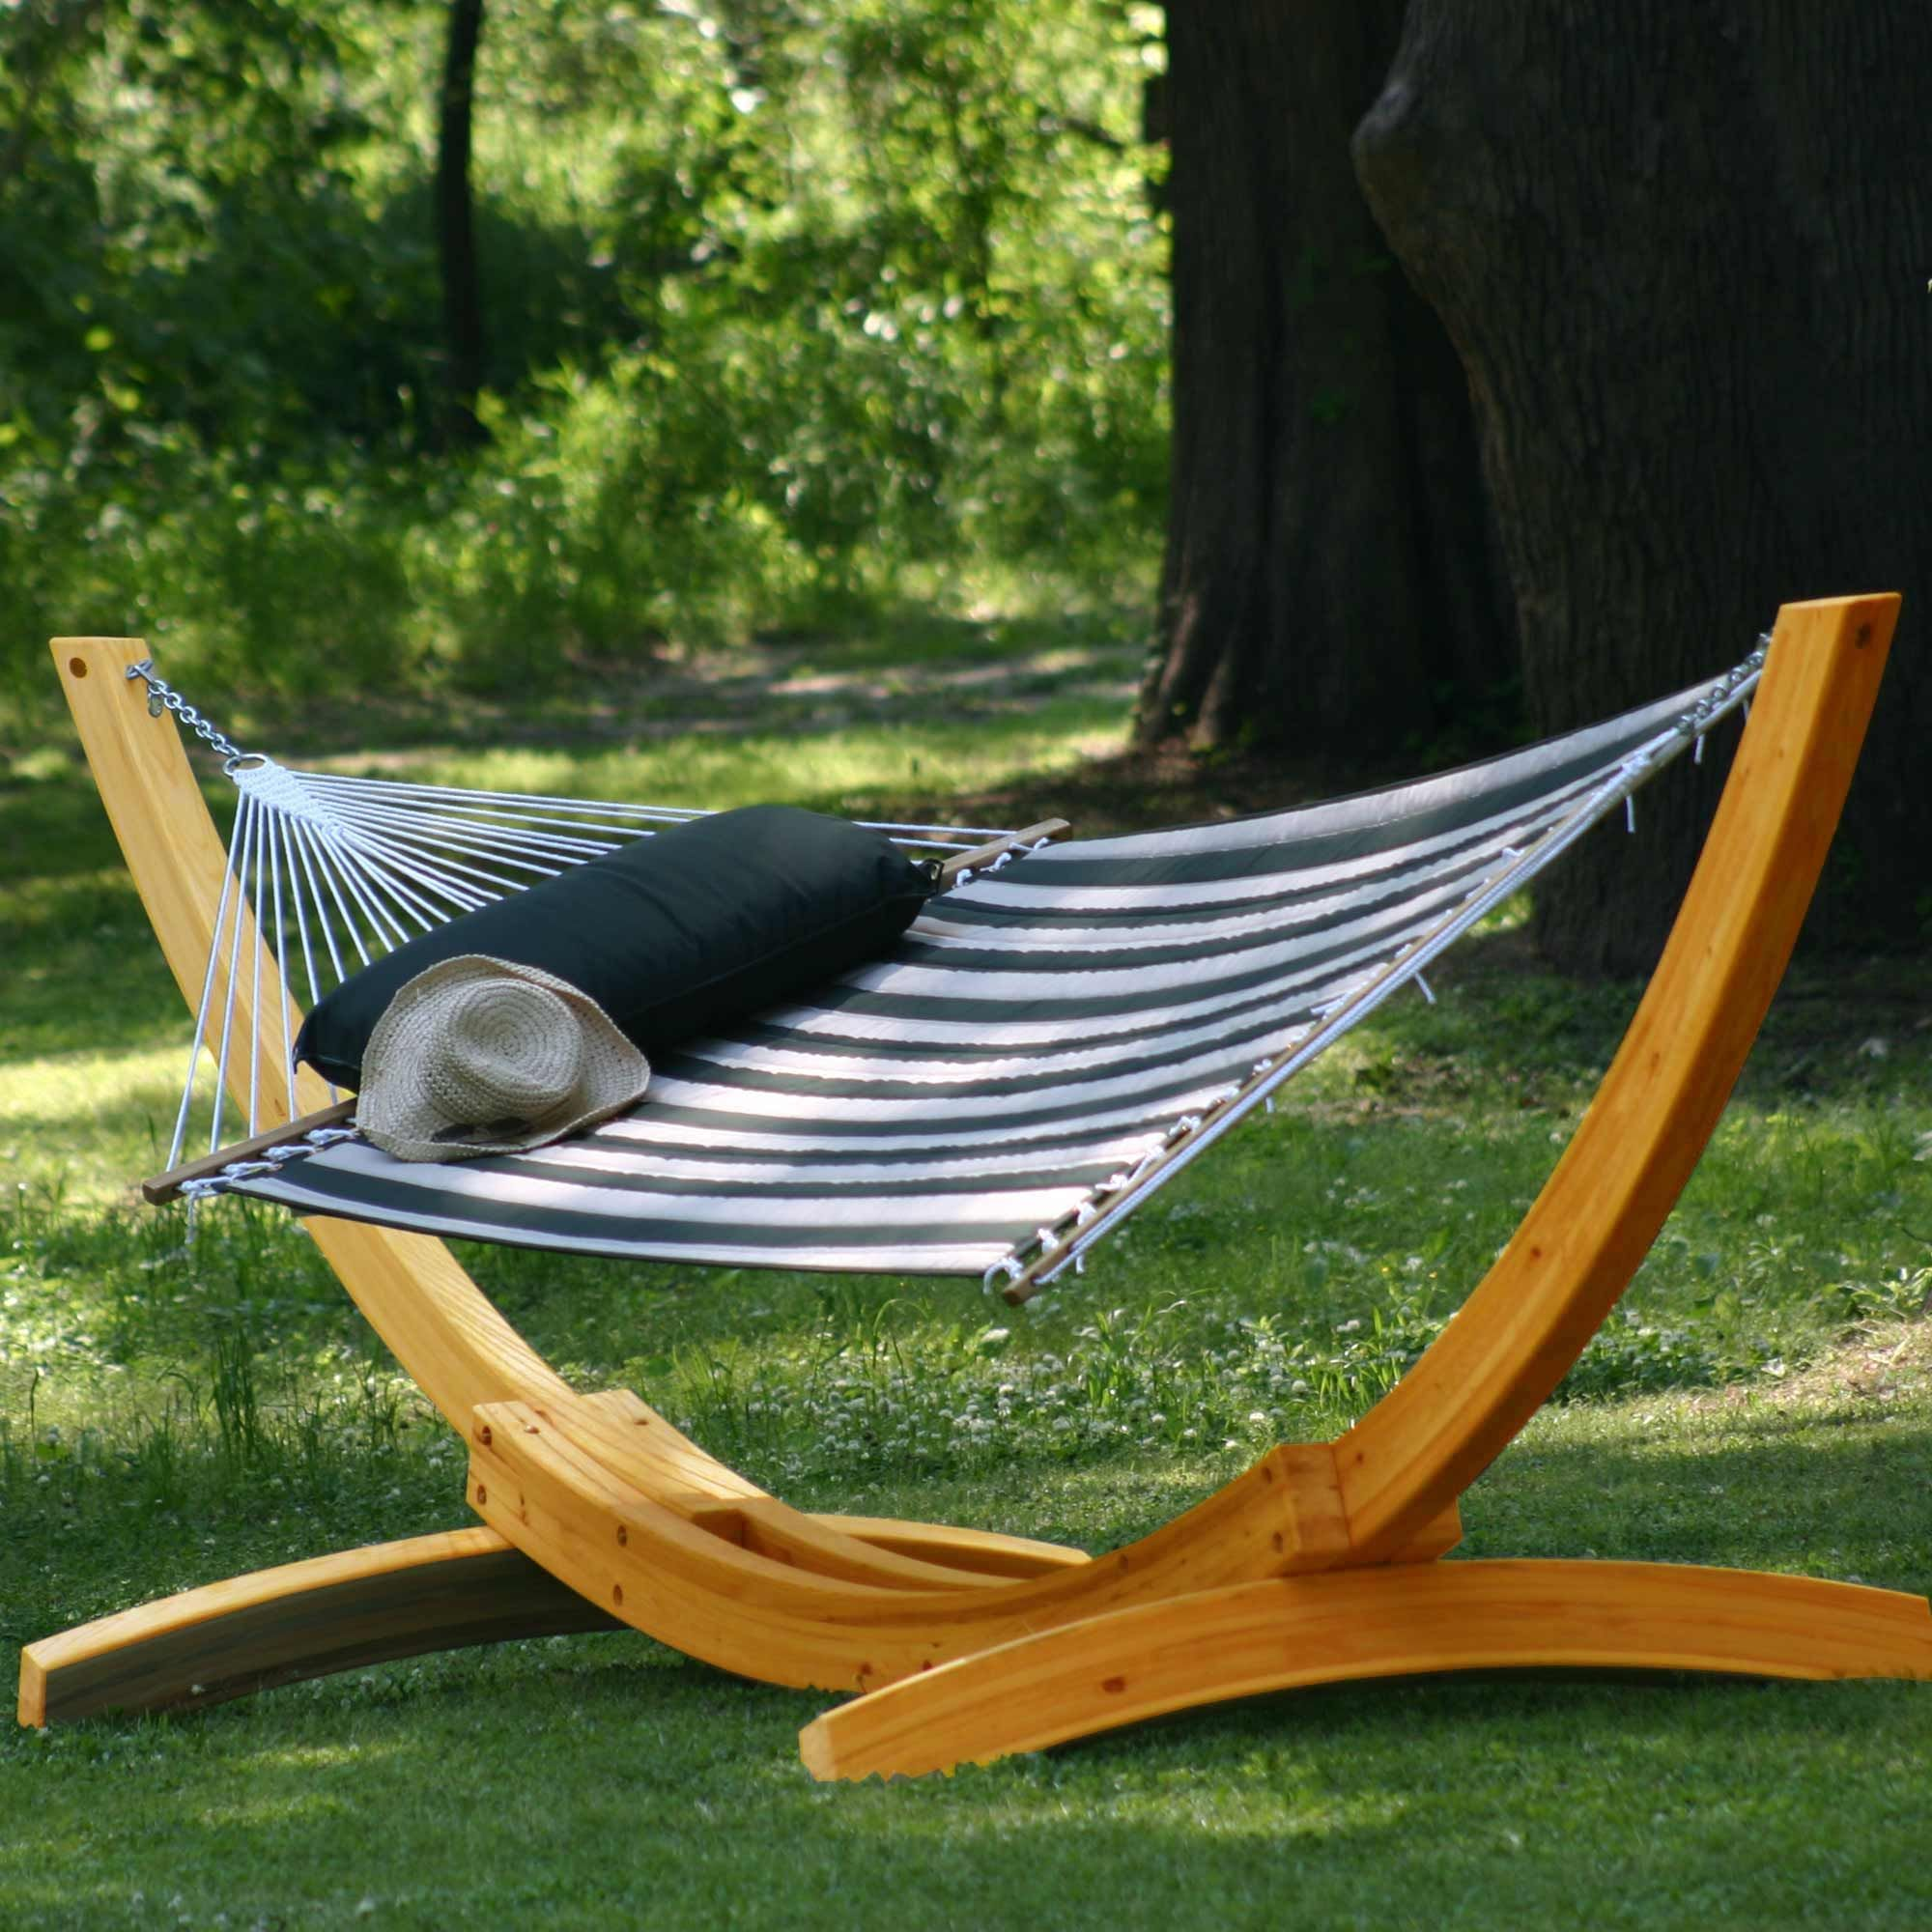 deluxe roman arc cypress hammock stand by hatteras hammocks  heavy duty stands  as i would need  are almost always sold separately from the hammock bed  this is wonderful and has enough room for 2 plus a little one to      rh   pinterest